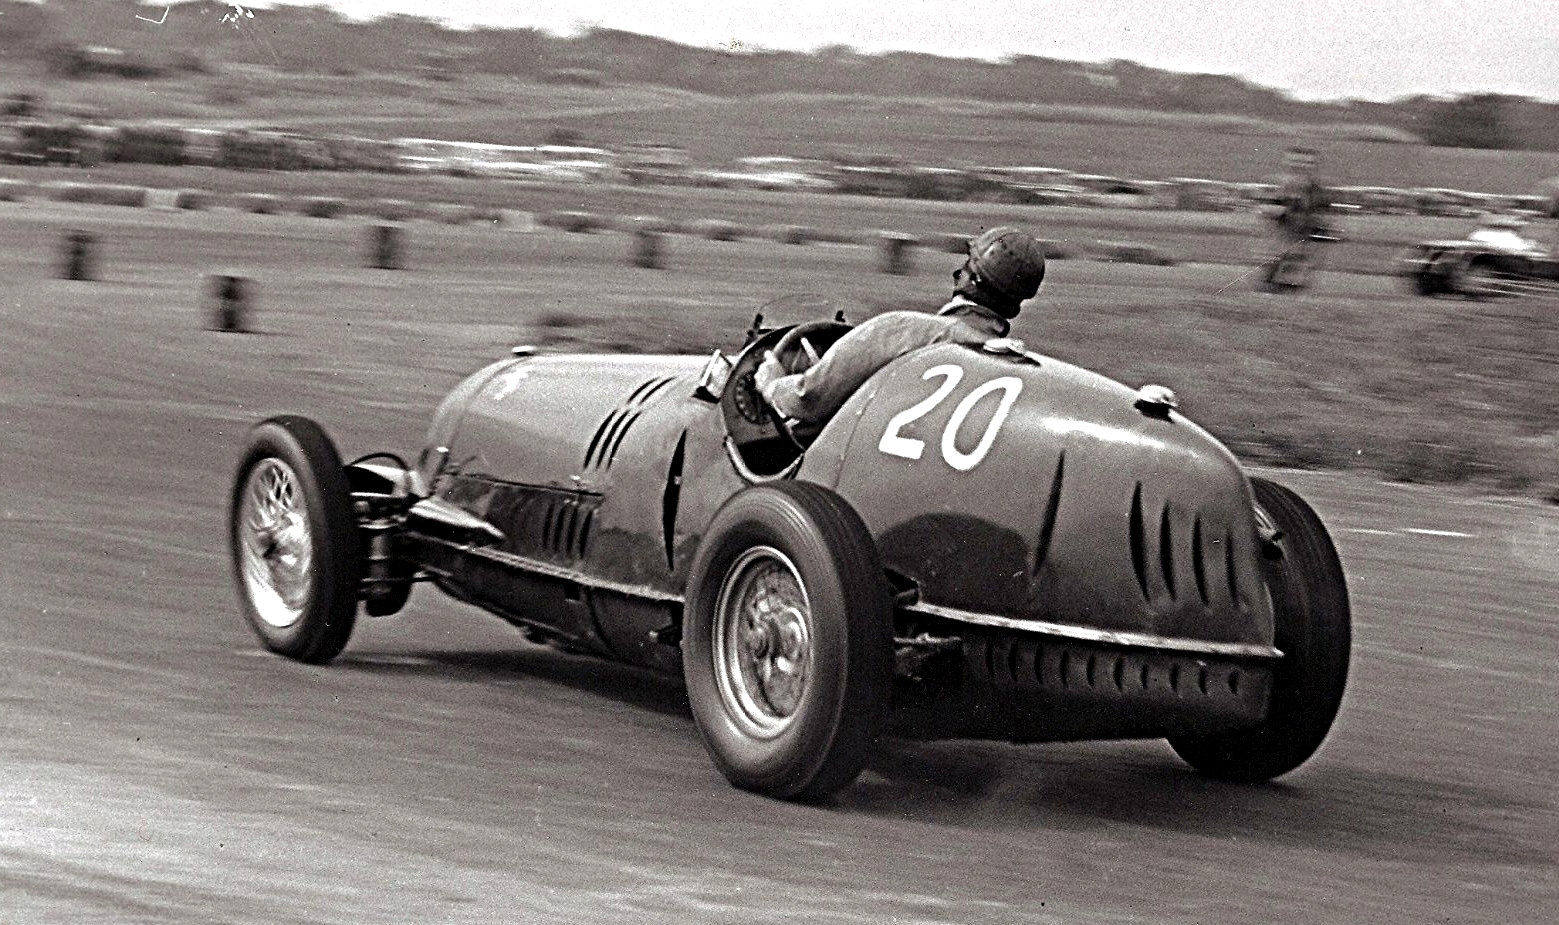 Dennis Poore races an Alfa Romeo in his racing days - 1952